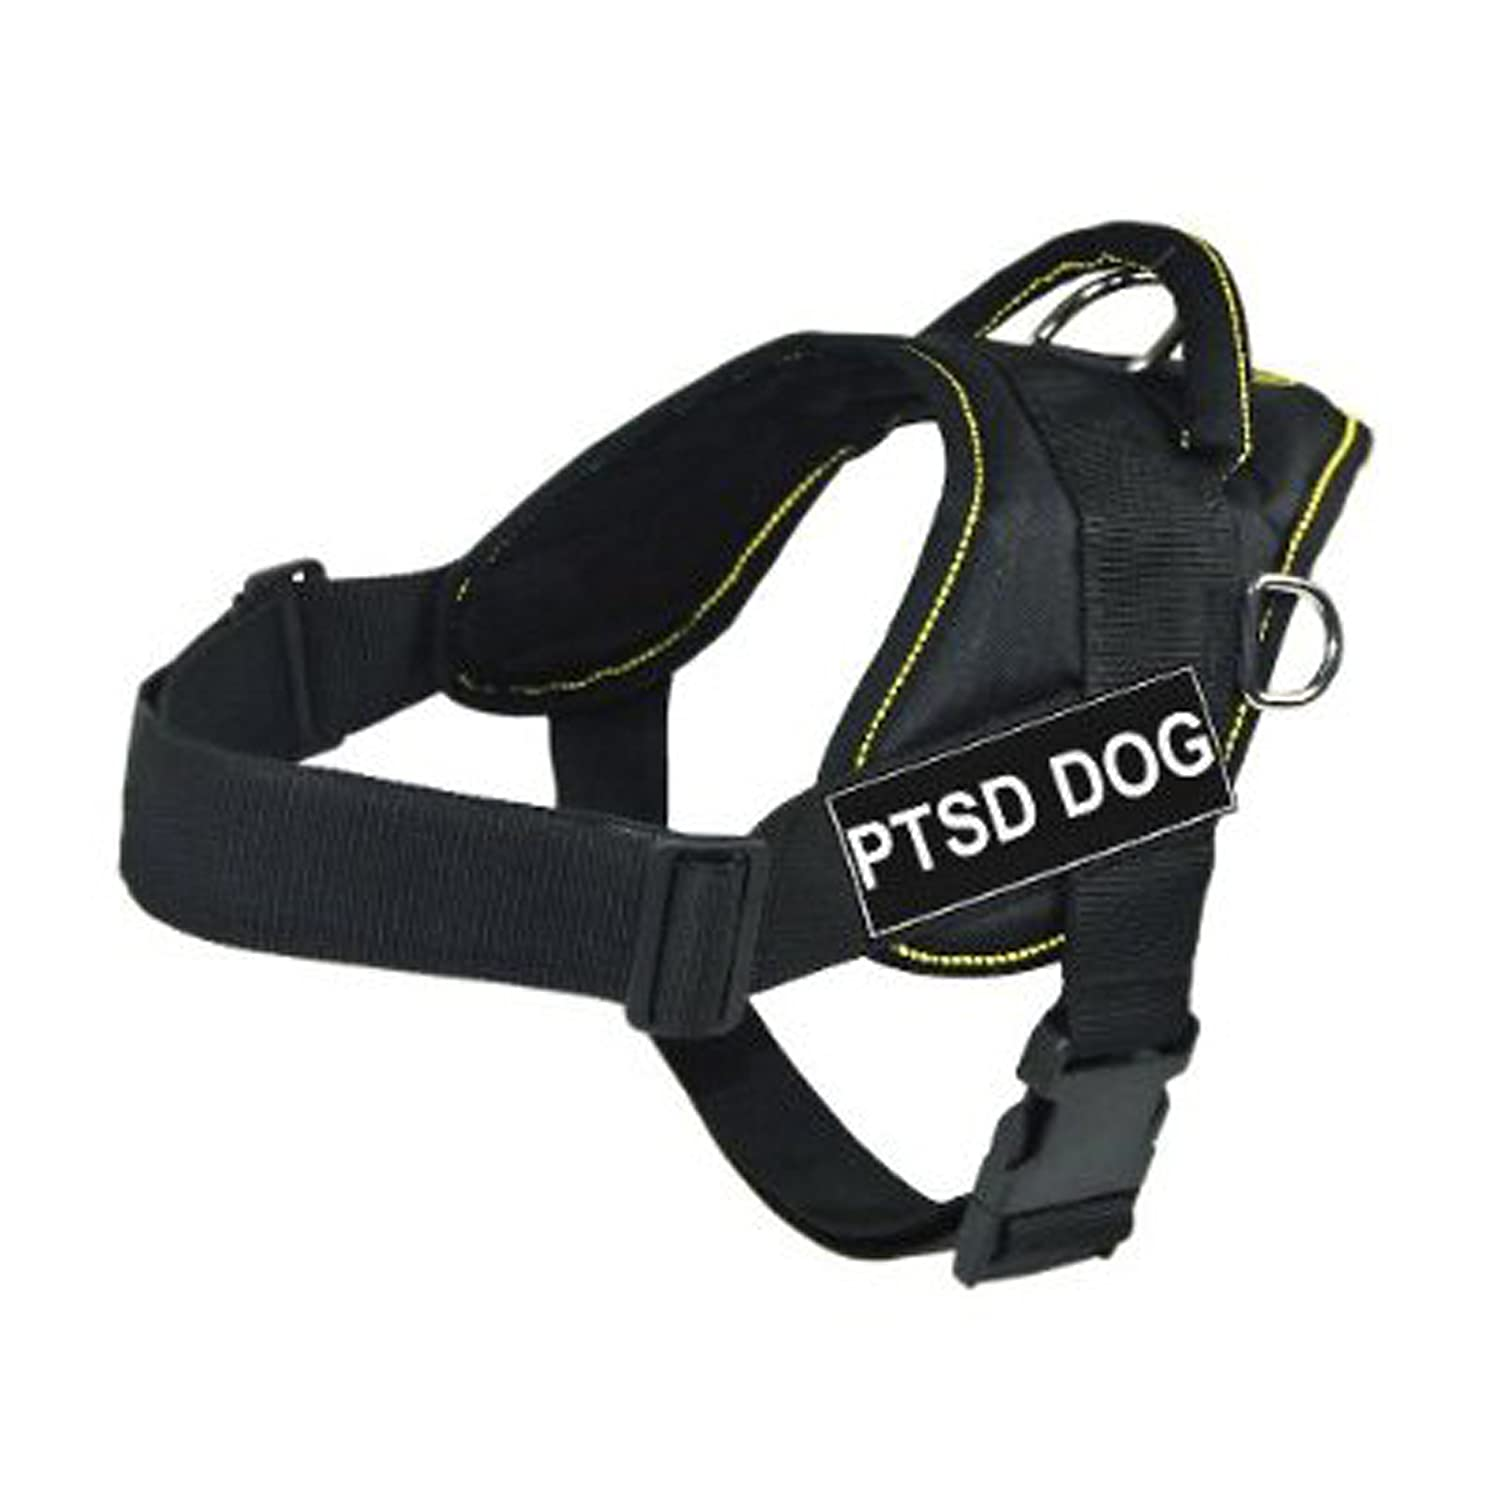 Dean & Tyler Fun Works Harness, PTSD Dog, Black with Yellow Trim, Medium, Fits Girth Size  28-Inch to 34-Inch